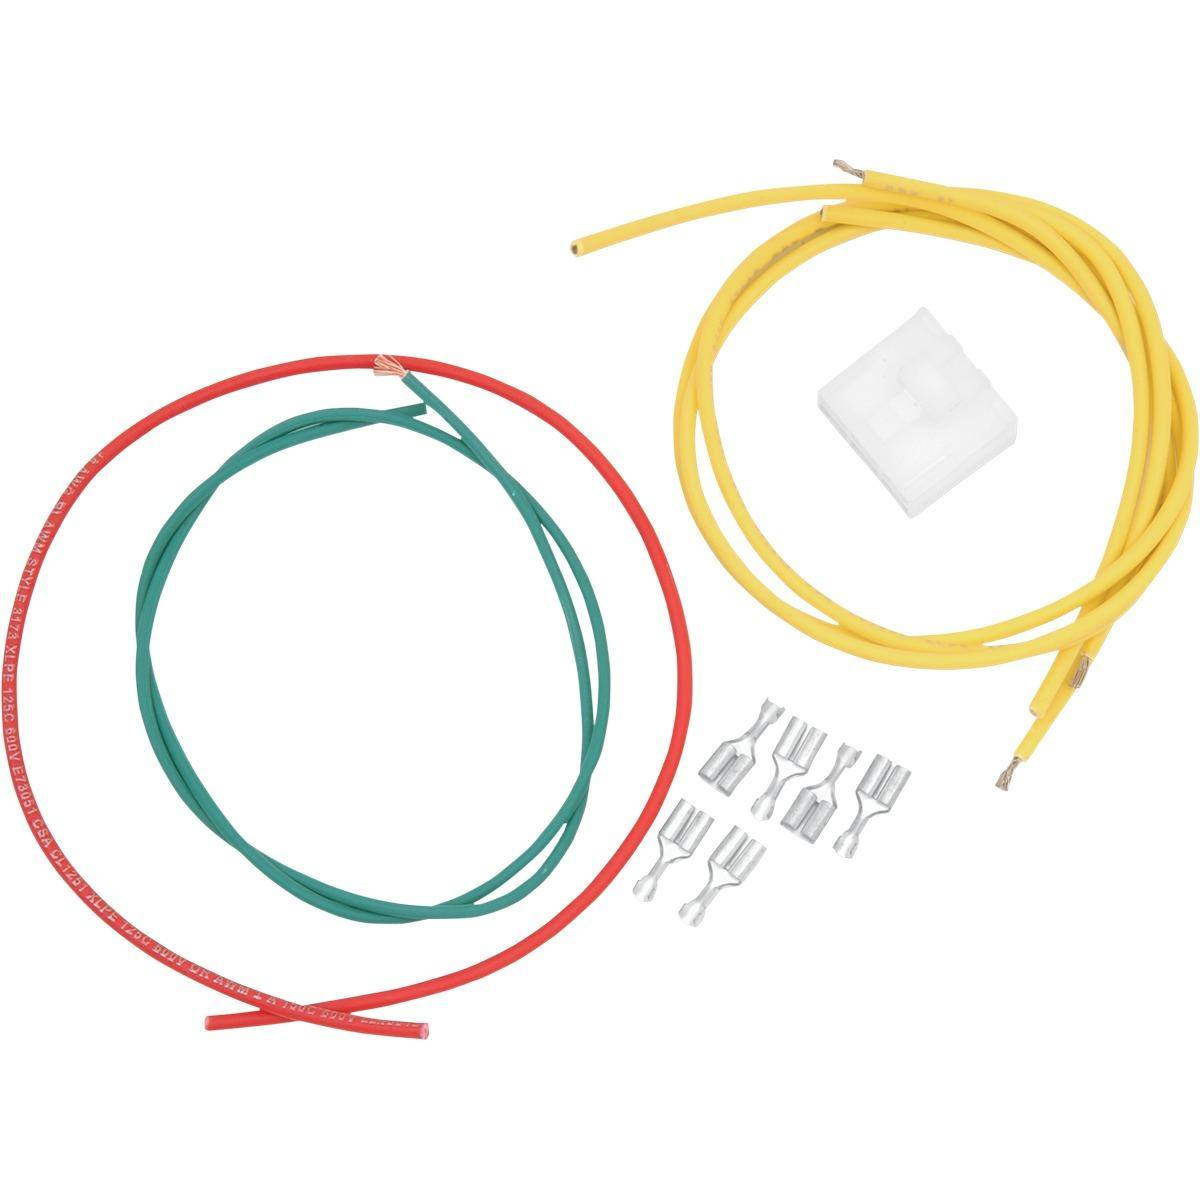 hight resolution of rectifier regulator wiring harness connector kit for sale in lake geneva wi midwest action cycle inc 262 249 0600